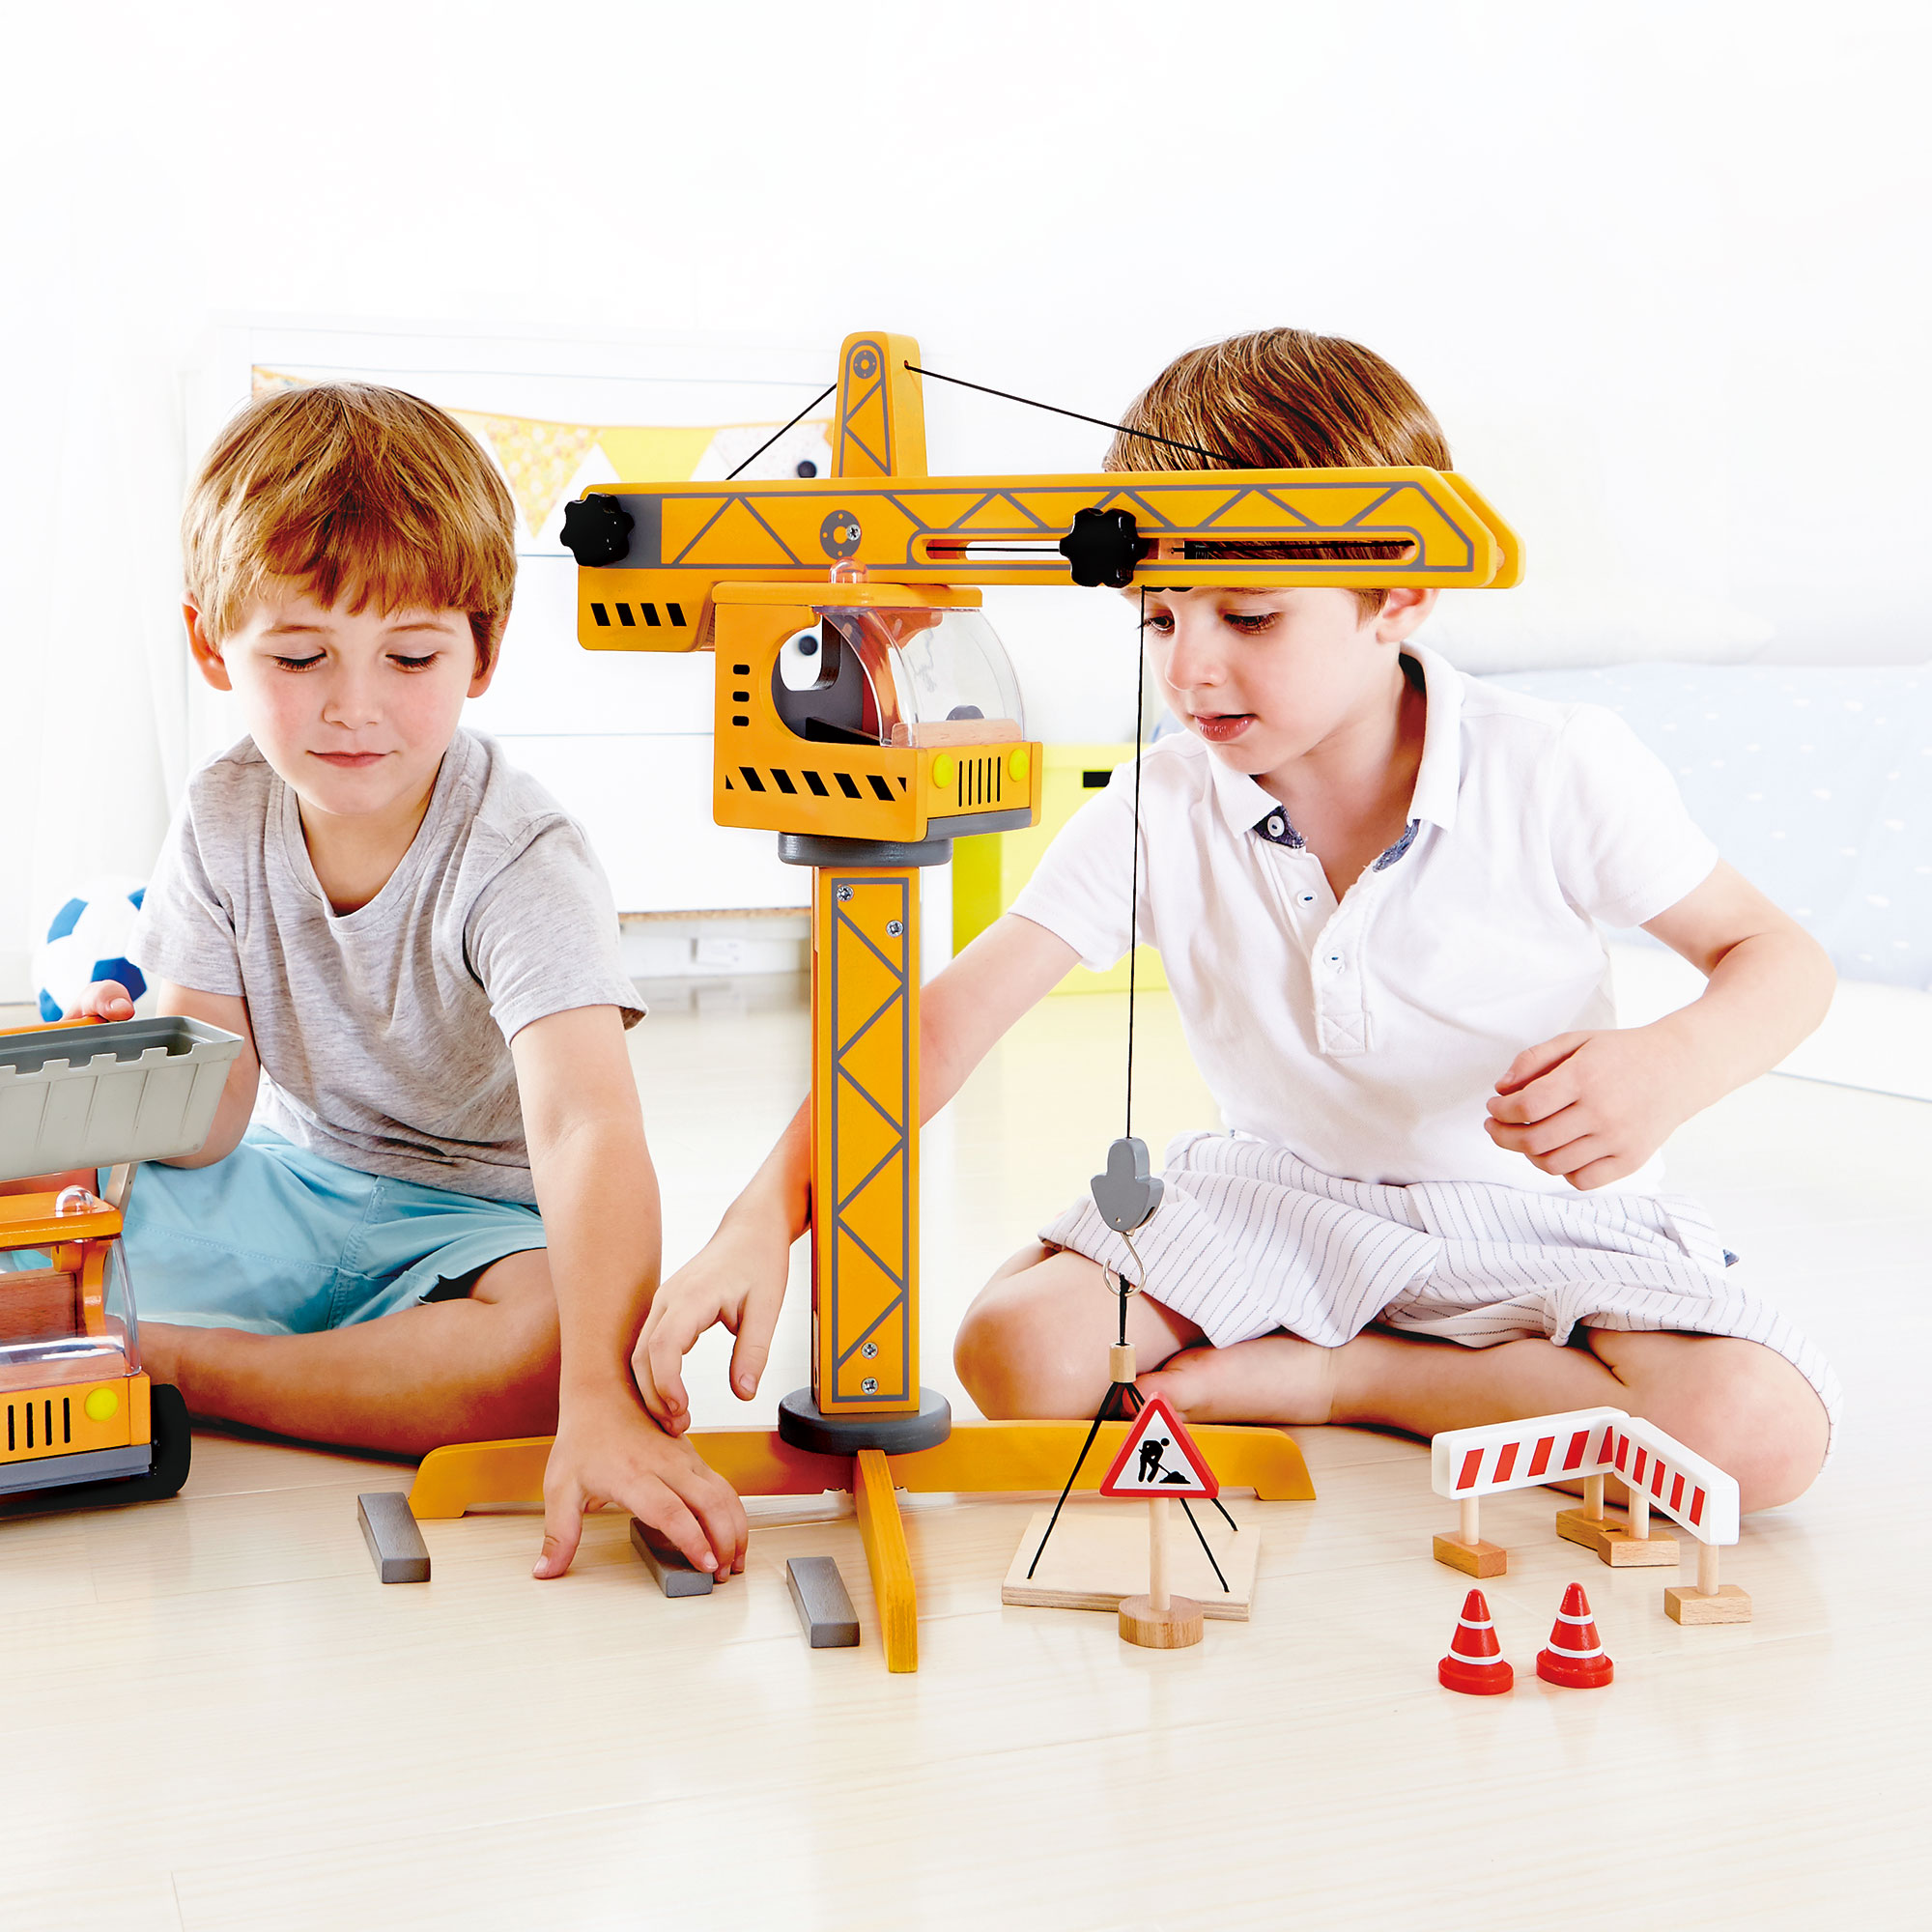 Construction Site Toys For Boys : Hape playscapes toddler kids wooden toy construction site